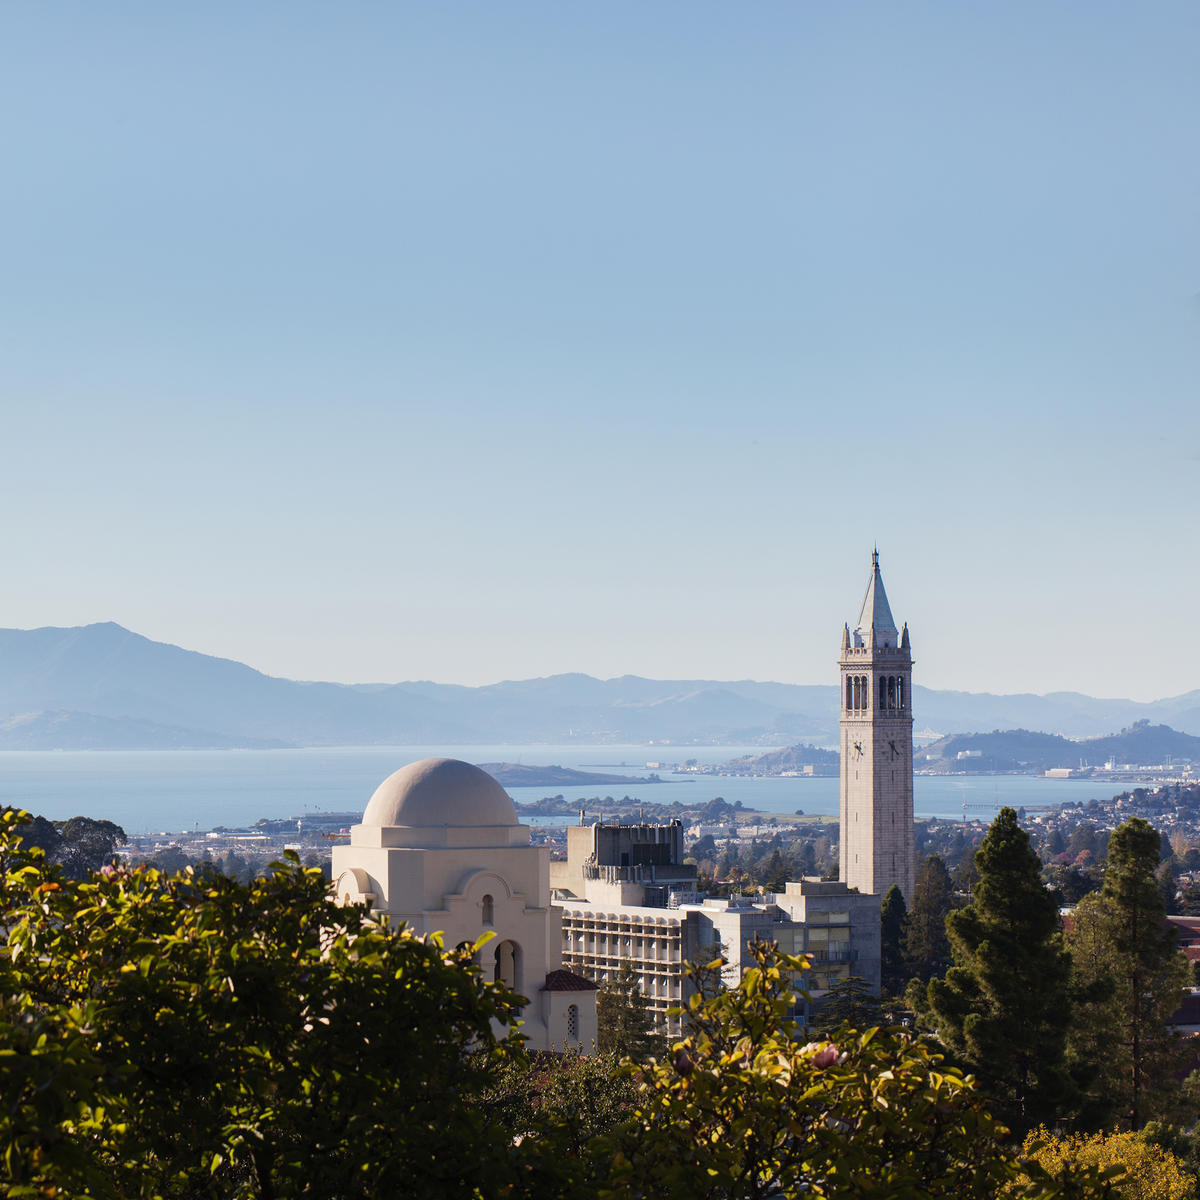 View of campanile and the bay